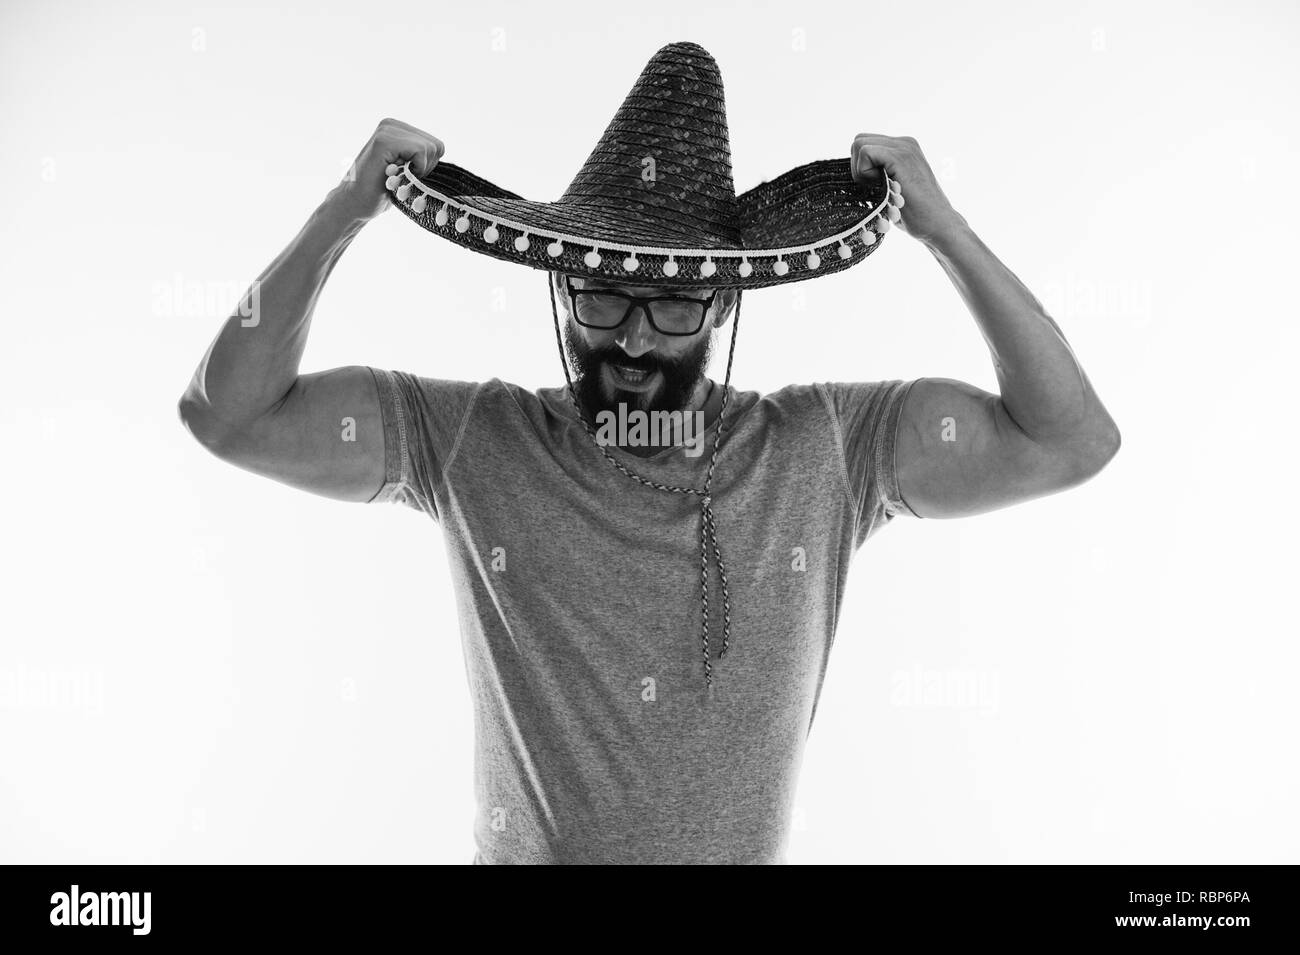 Muscular man in sombrero. Mexican man keep sombrero hat in muscular hands. Strength and masculinity. In love with mexico, black and white. - Stock Image